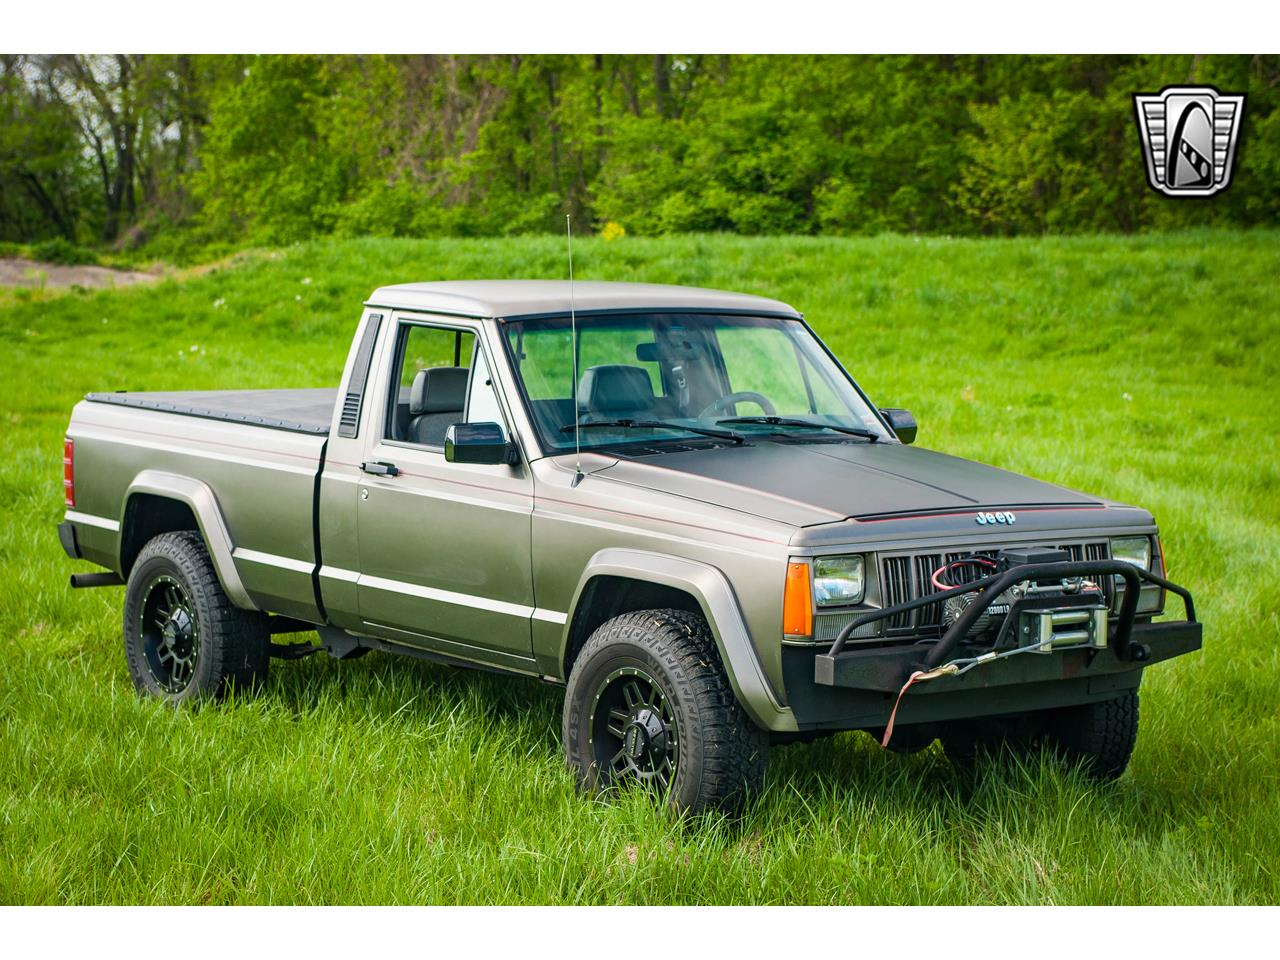 Large Picture of '90 Jeep Comanche located in O'Fallon Illinois Offered by Gateway Classic Cars - St. Louis - QB8P